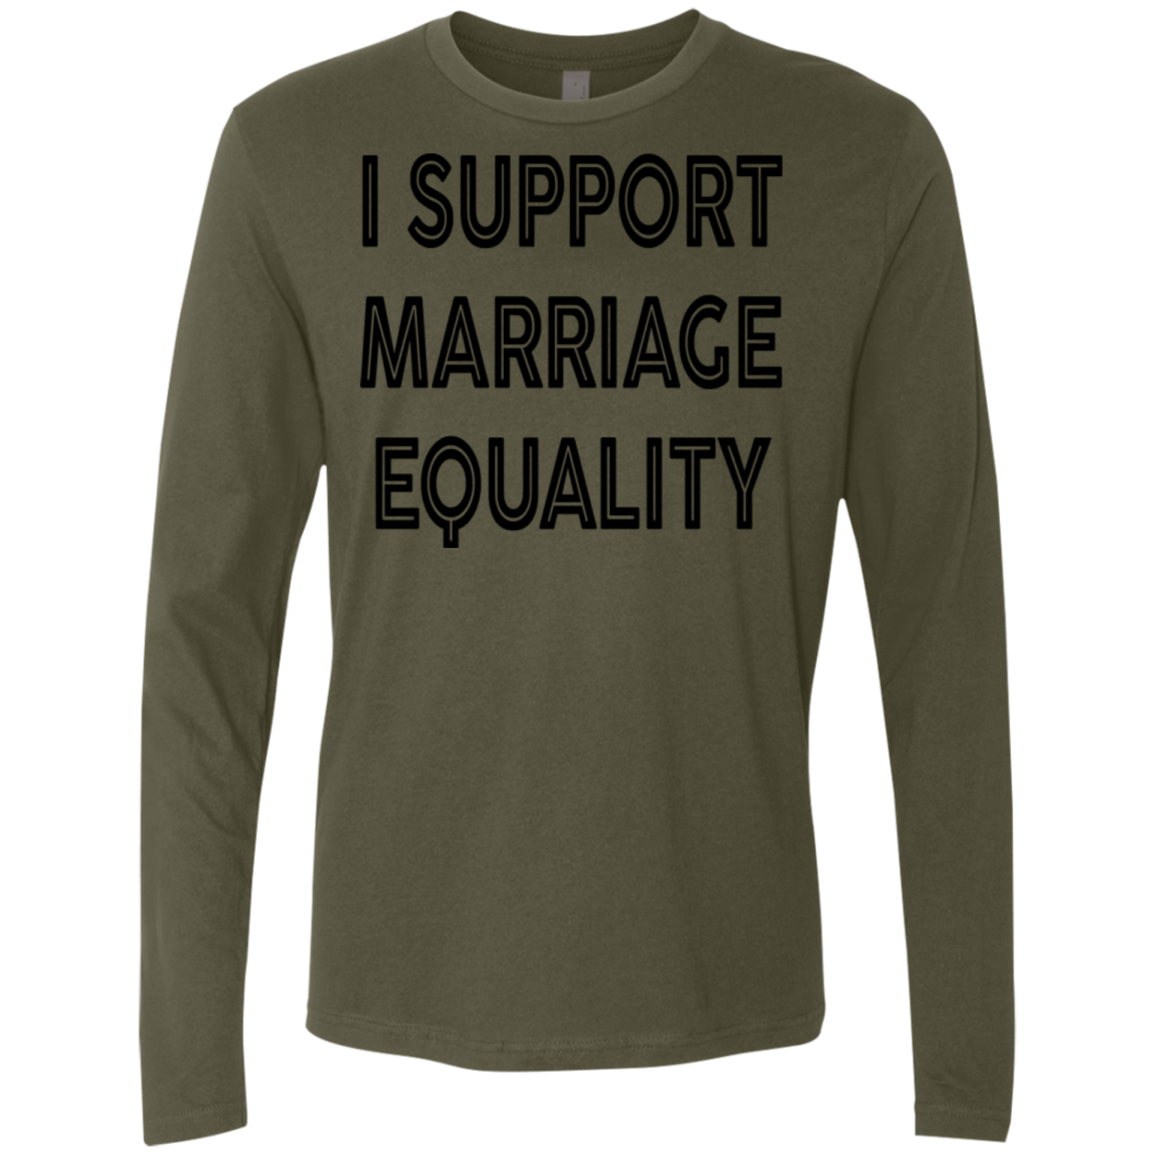 I Support Marriage Equality Men's Long Sleeve Tee